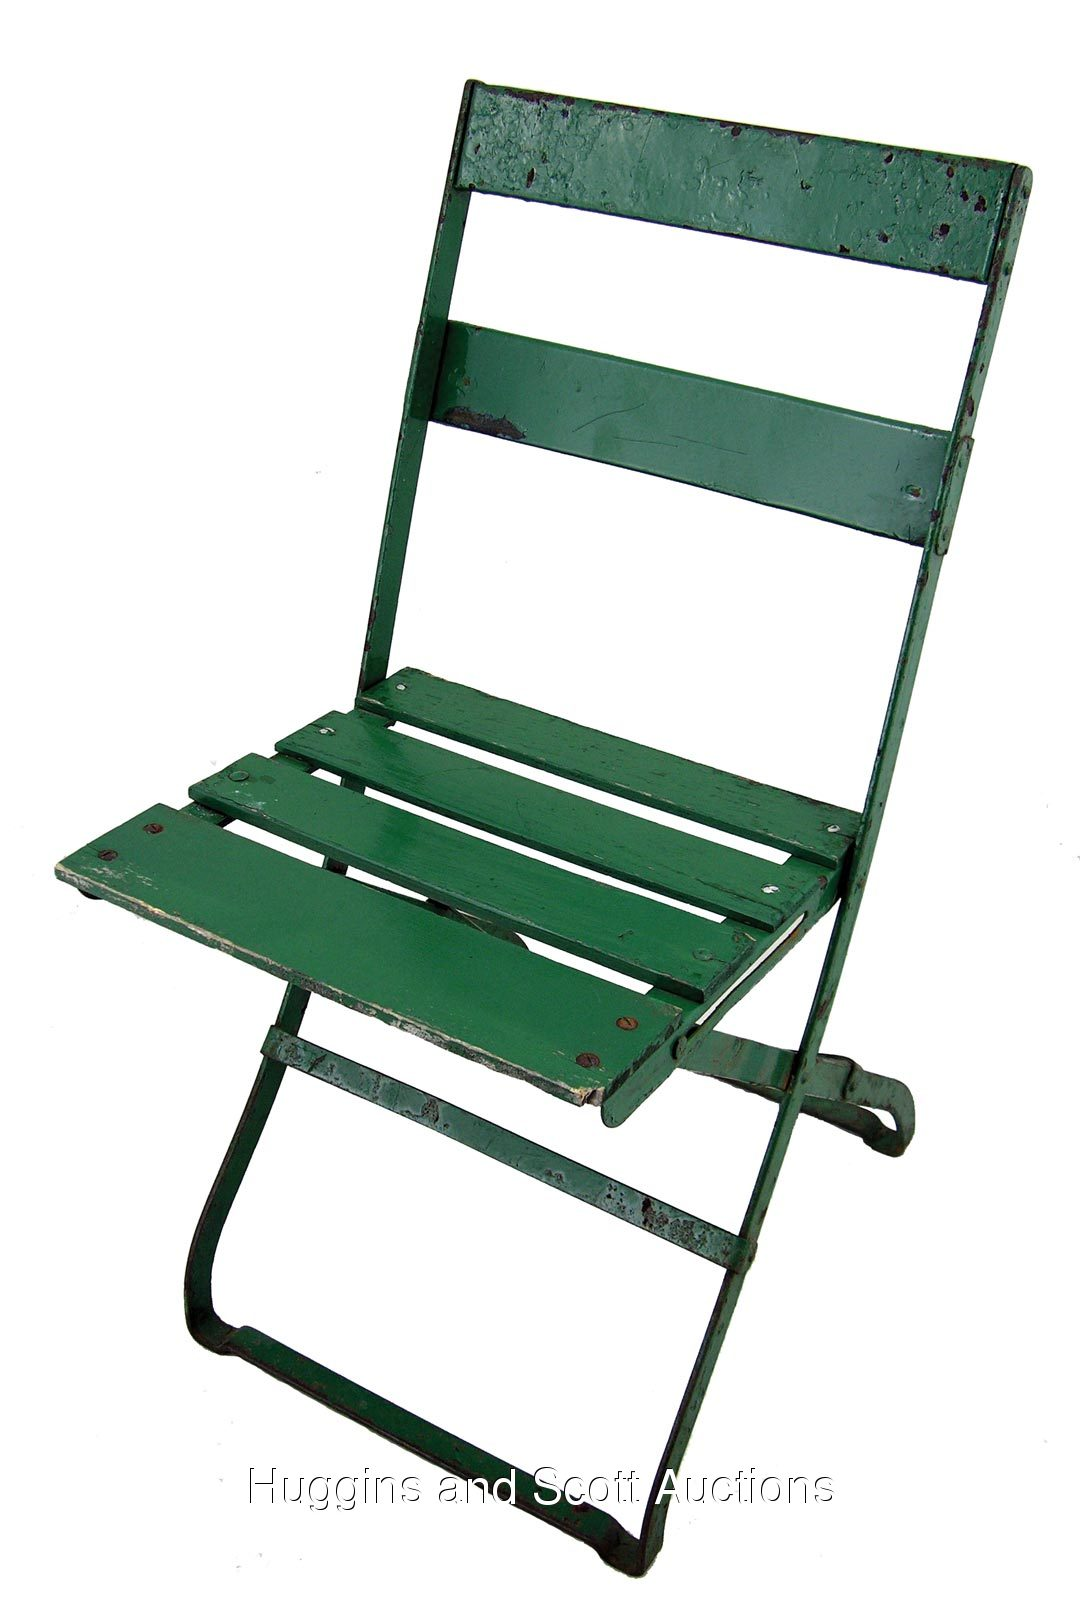 notre dame chair floating for bedroom original 1930s stadium folding pictures click on photo to enlarge